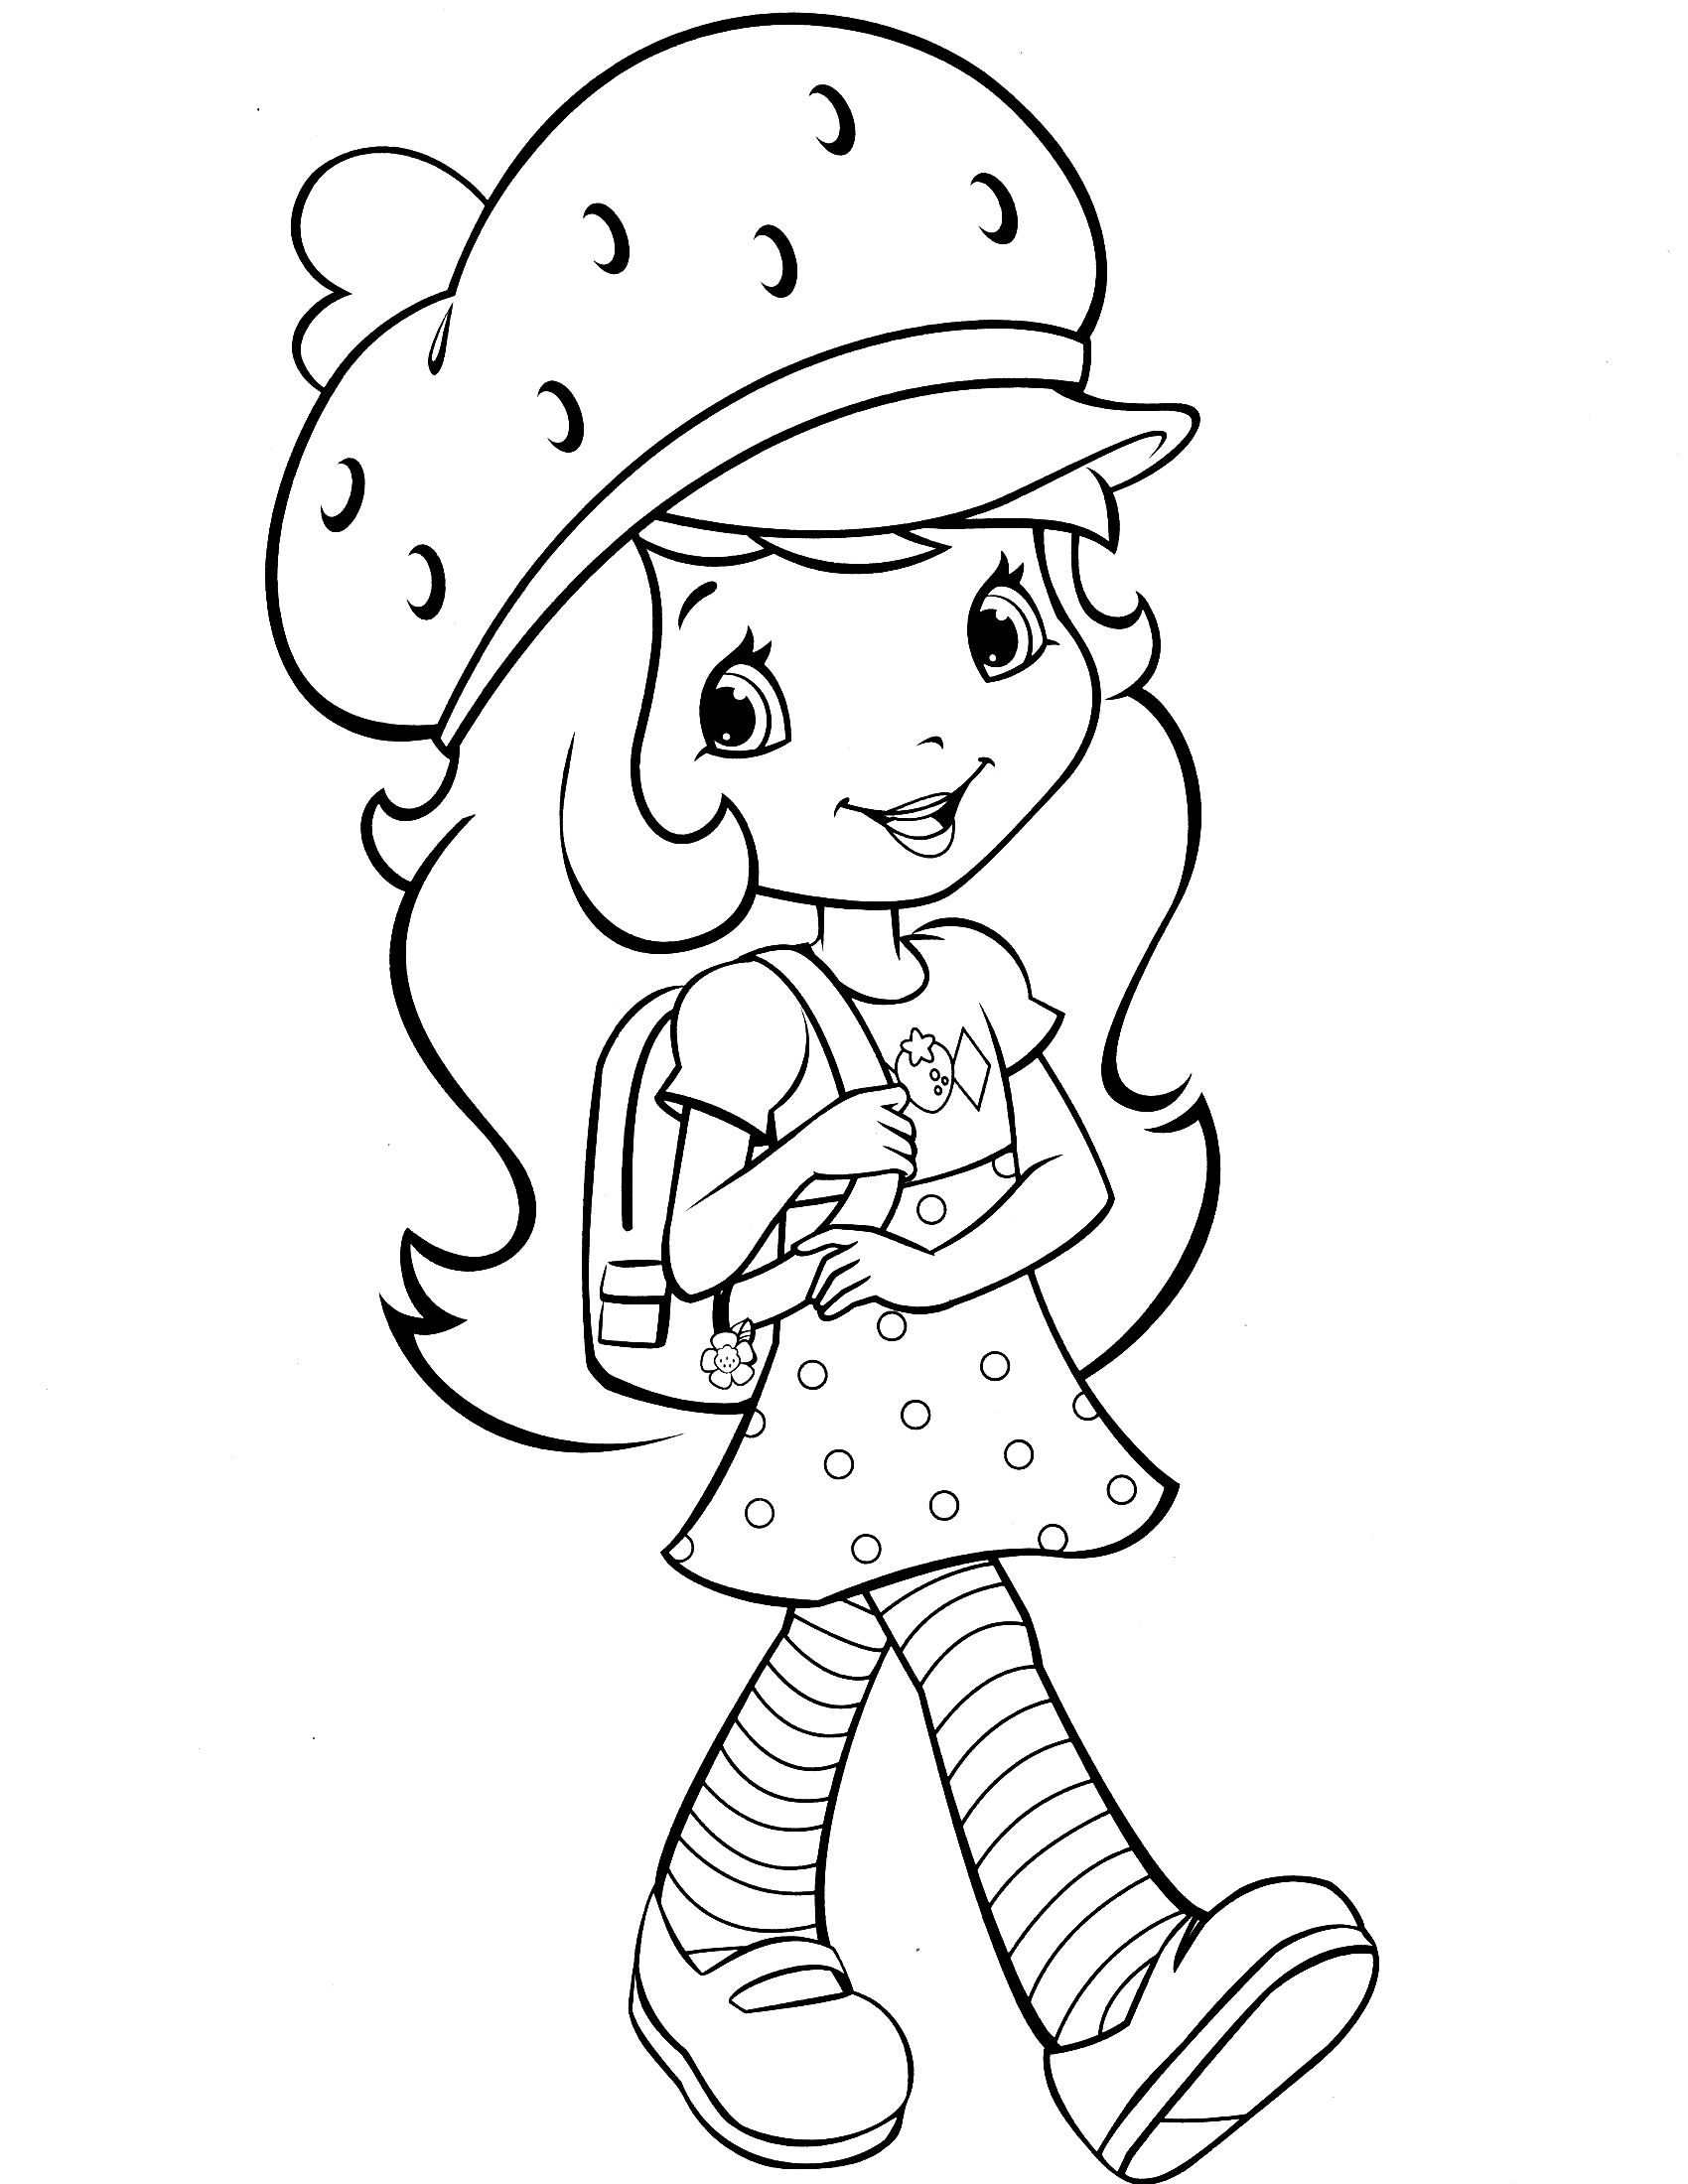 strawberry shortcake drawing pages strawberry shortcake 43 coloringcolorcom strawberry drawing shortcake pages